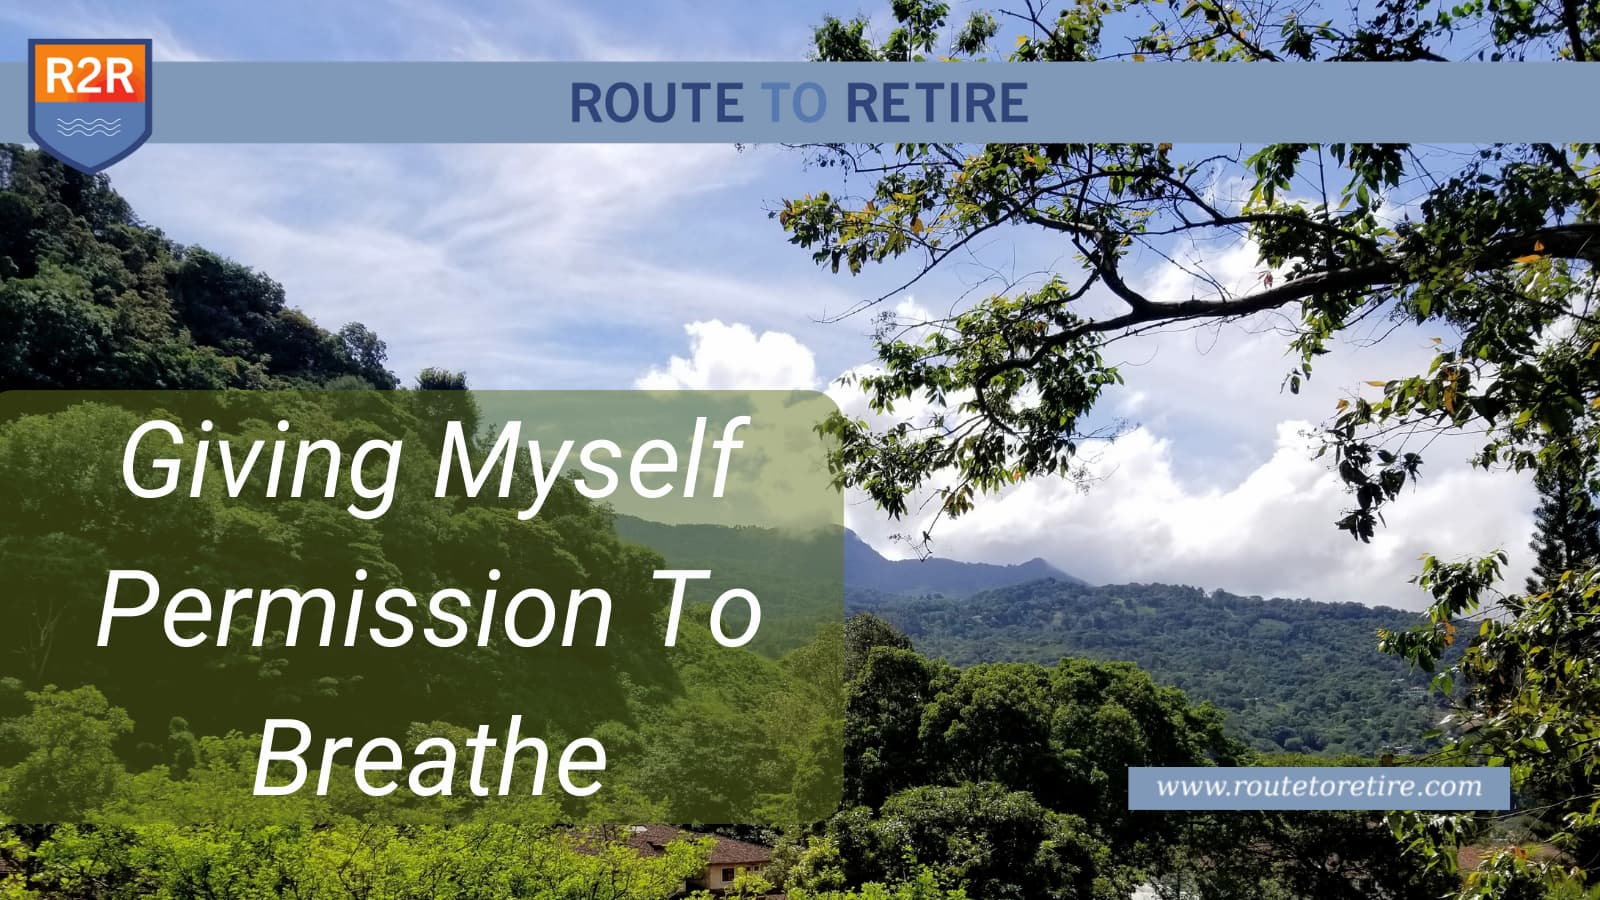 Giving Myself Permission To Breathe